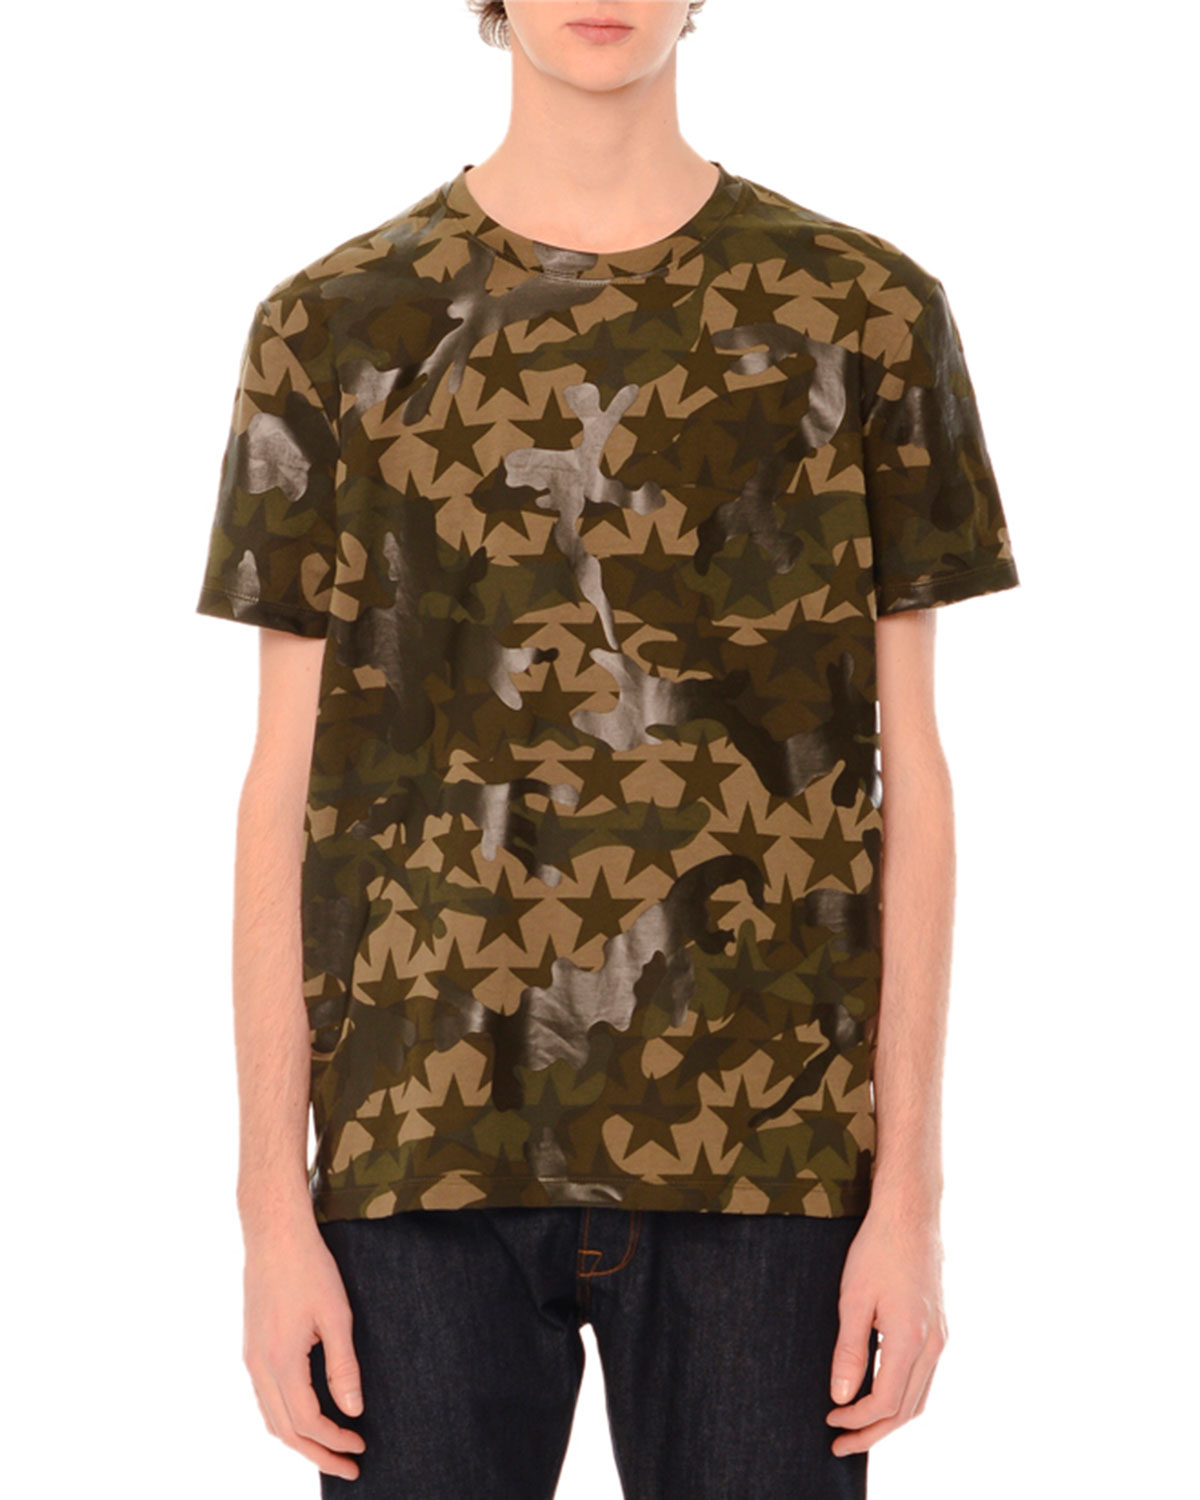 Camo & Star-Print Short-Sleeve T-Shirt, Green Multi